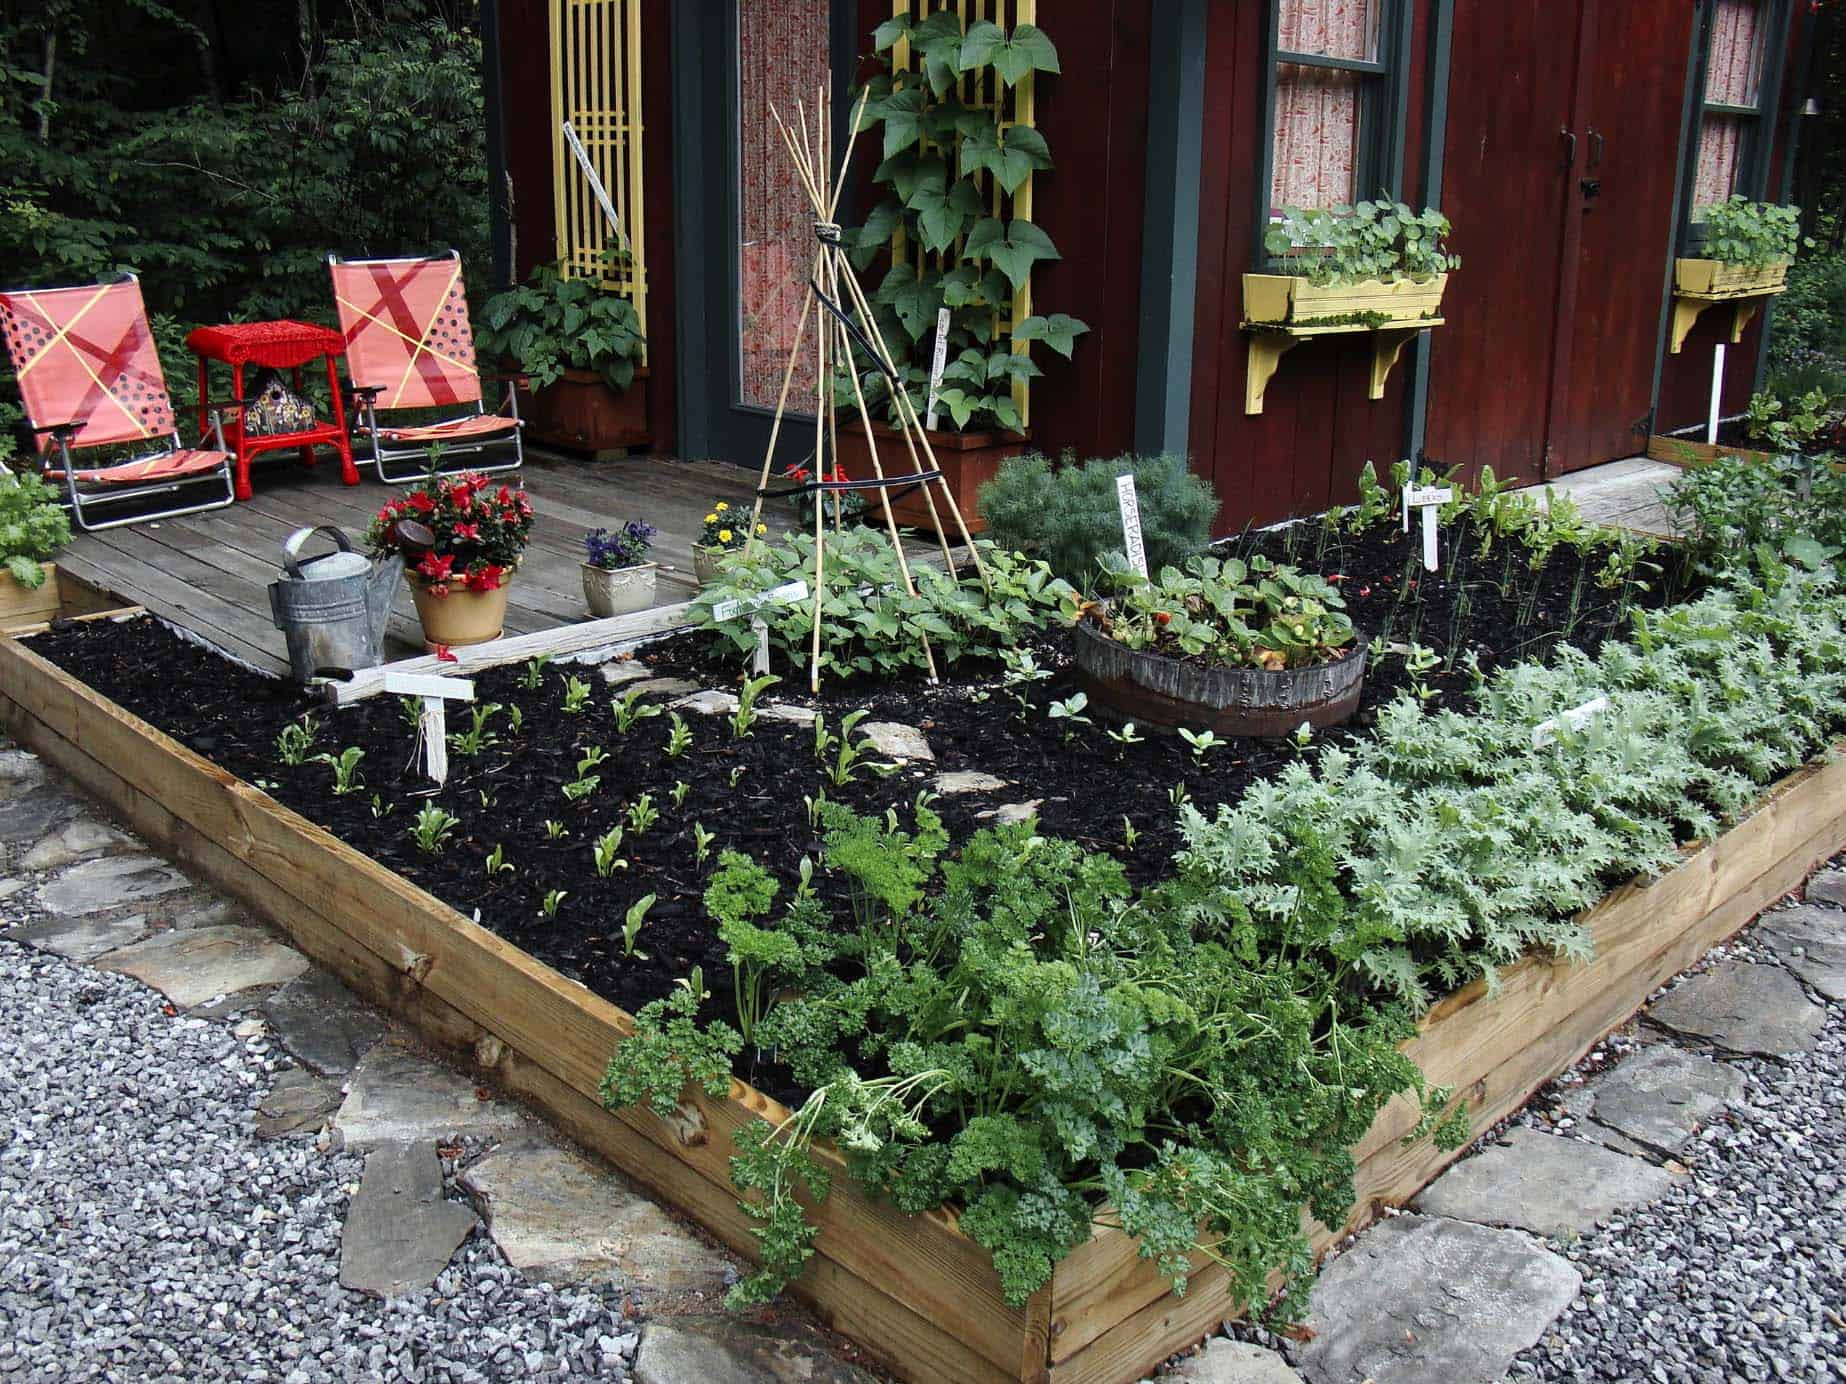 30 Amazing Ideas For Growing A Vegetable Garden In Your ... on Outdoor Vegetable Garden Ideas id=90401